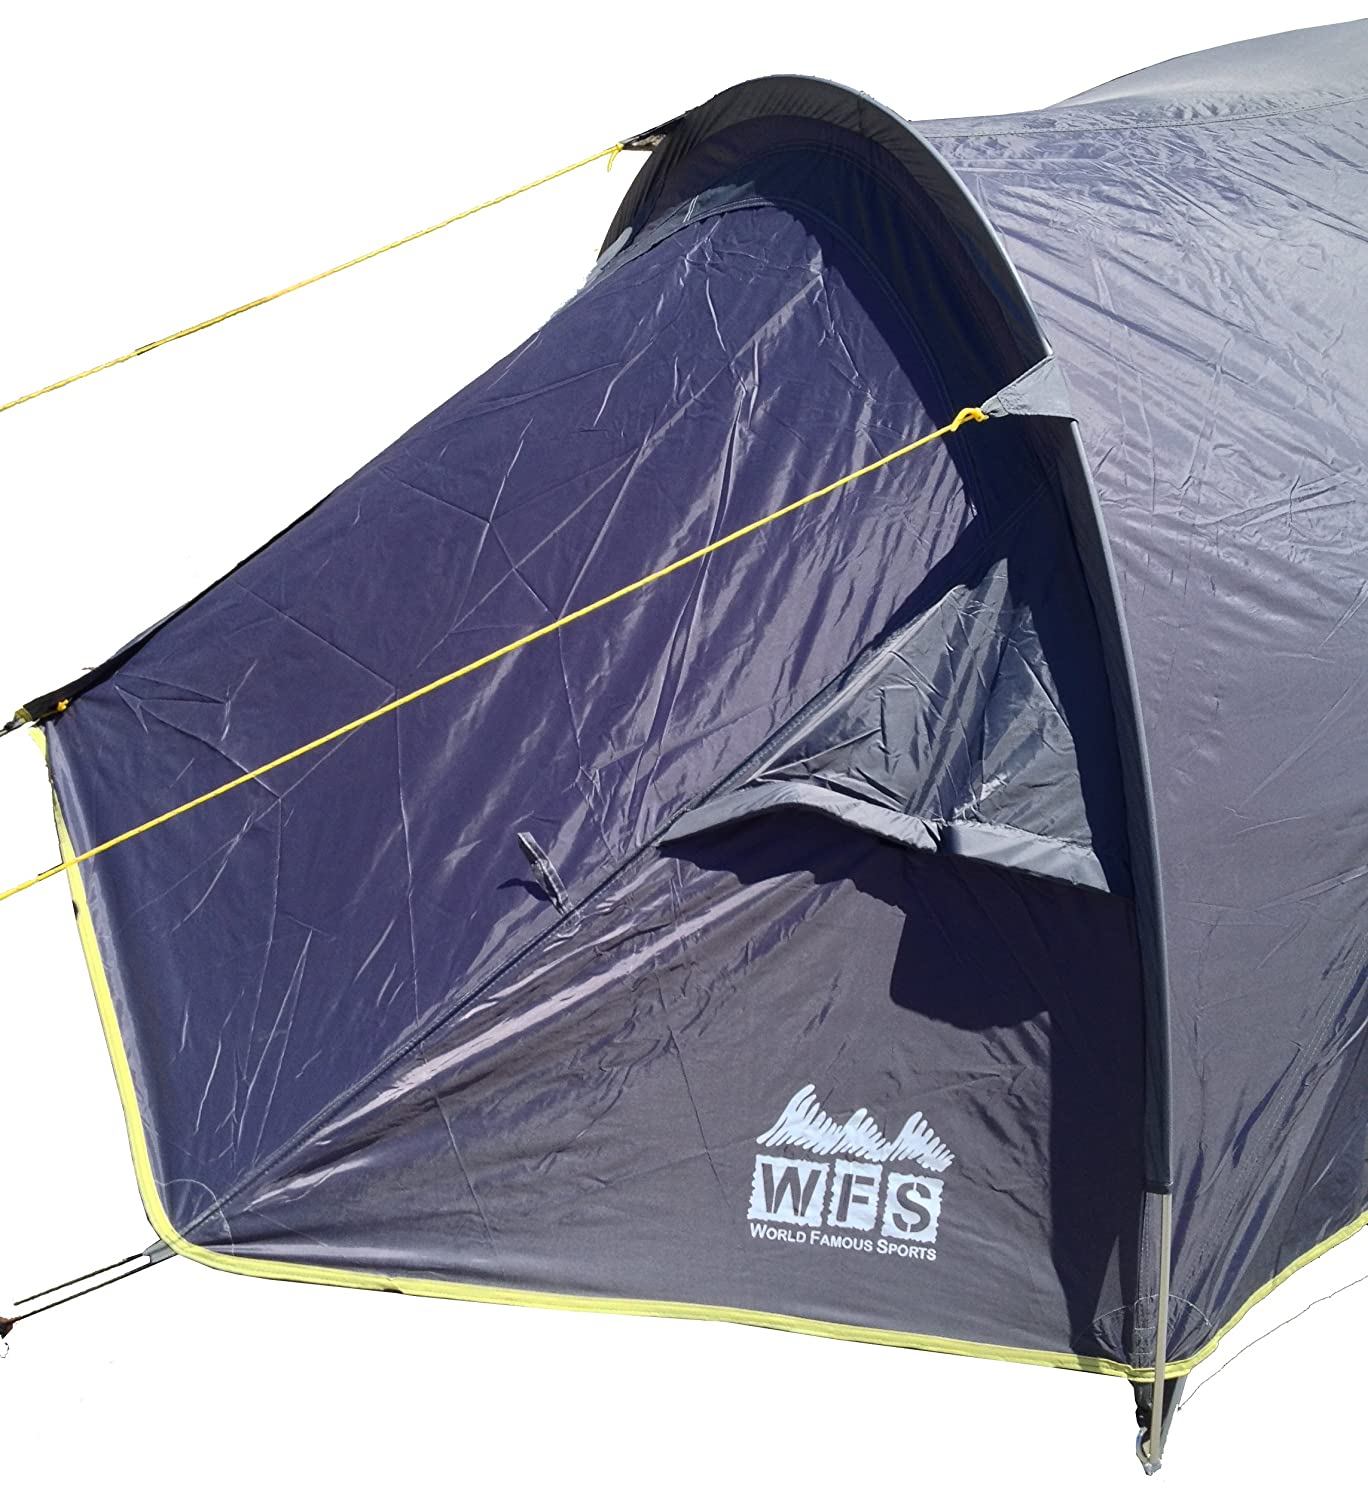 Amazon.com  World Famous Sports 2-Person 3-Season C&ing Tent  Sports u0026 Outdoors  sc 1 st  Amazon.com & Amazon.com : World Famous Sports 2-Person 3-Season Camping Tent ...